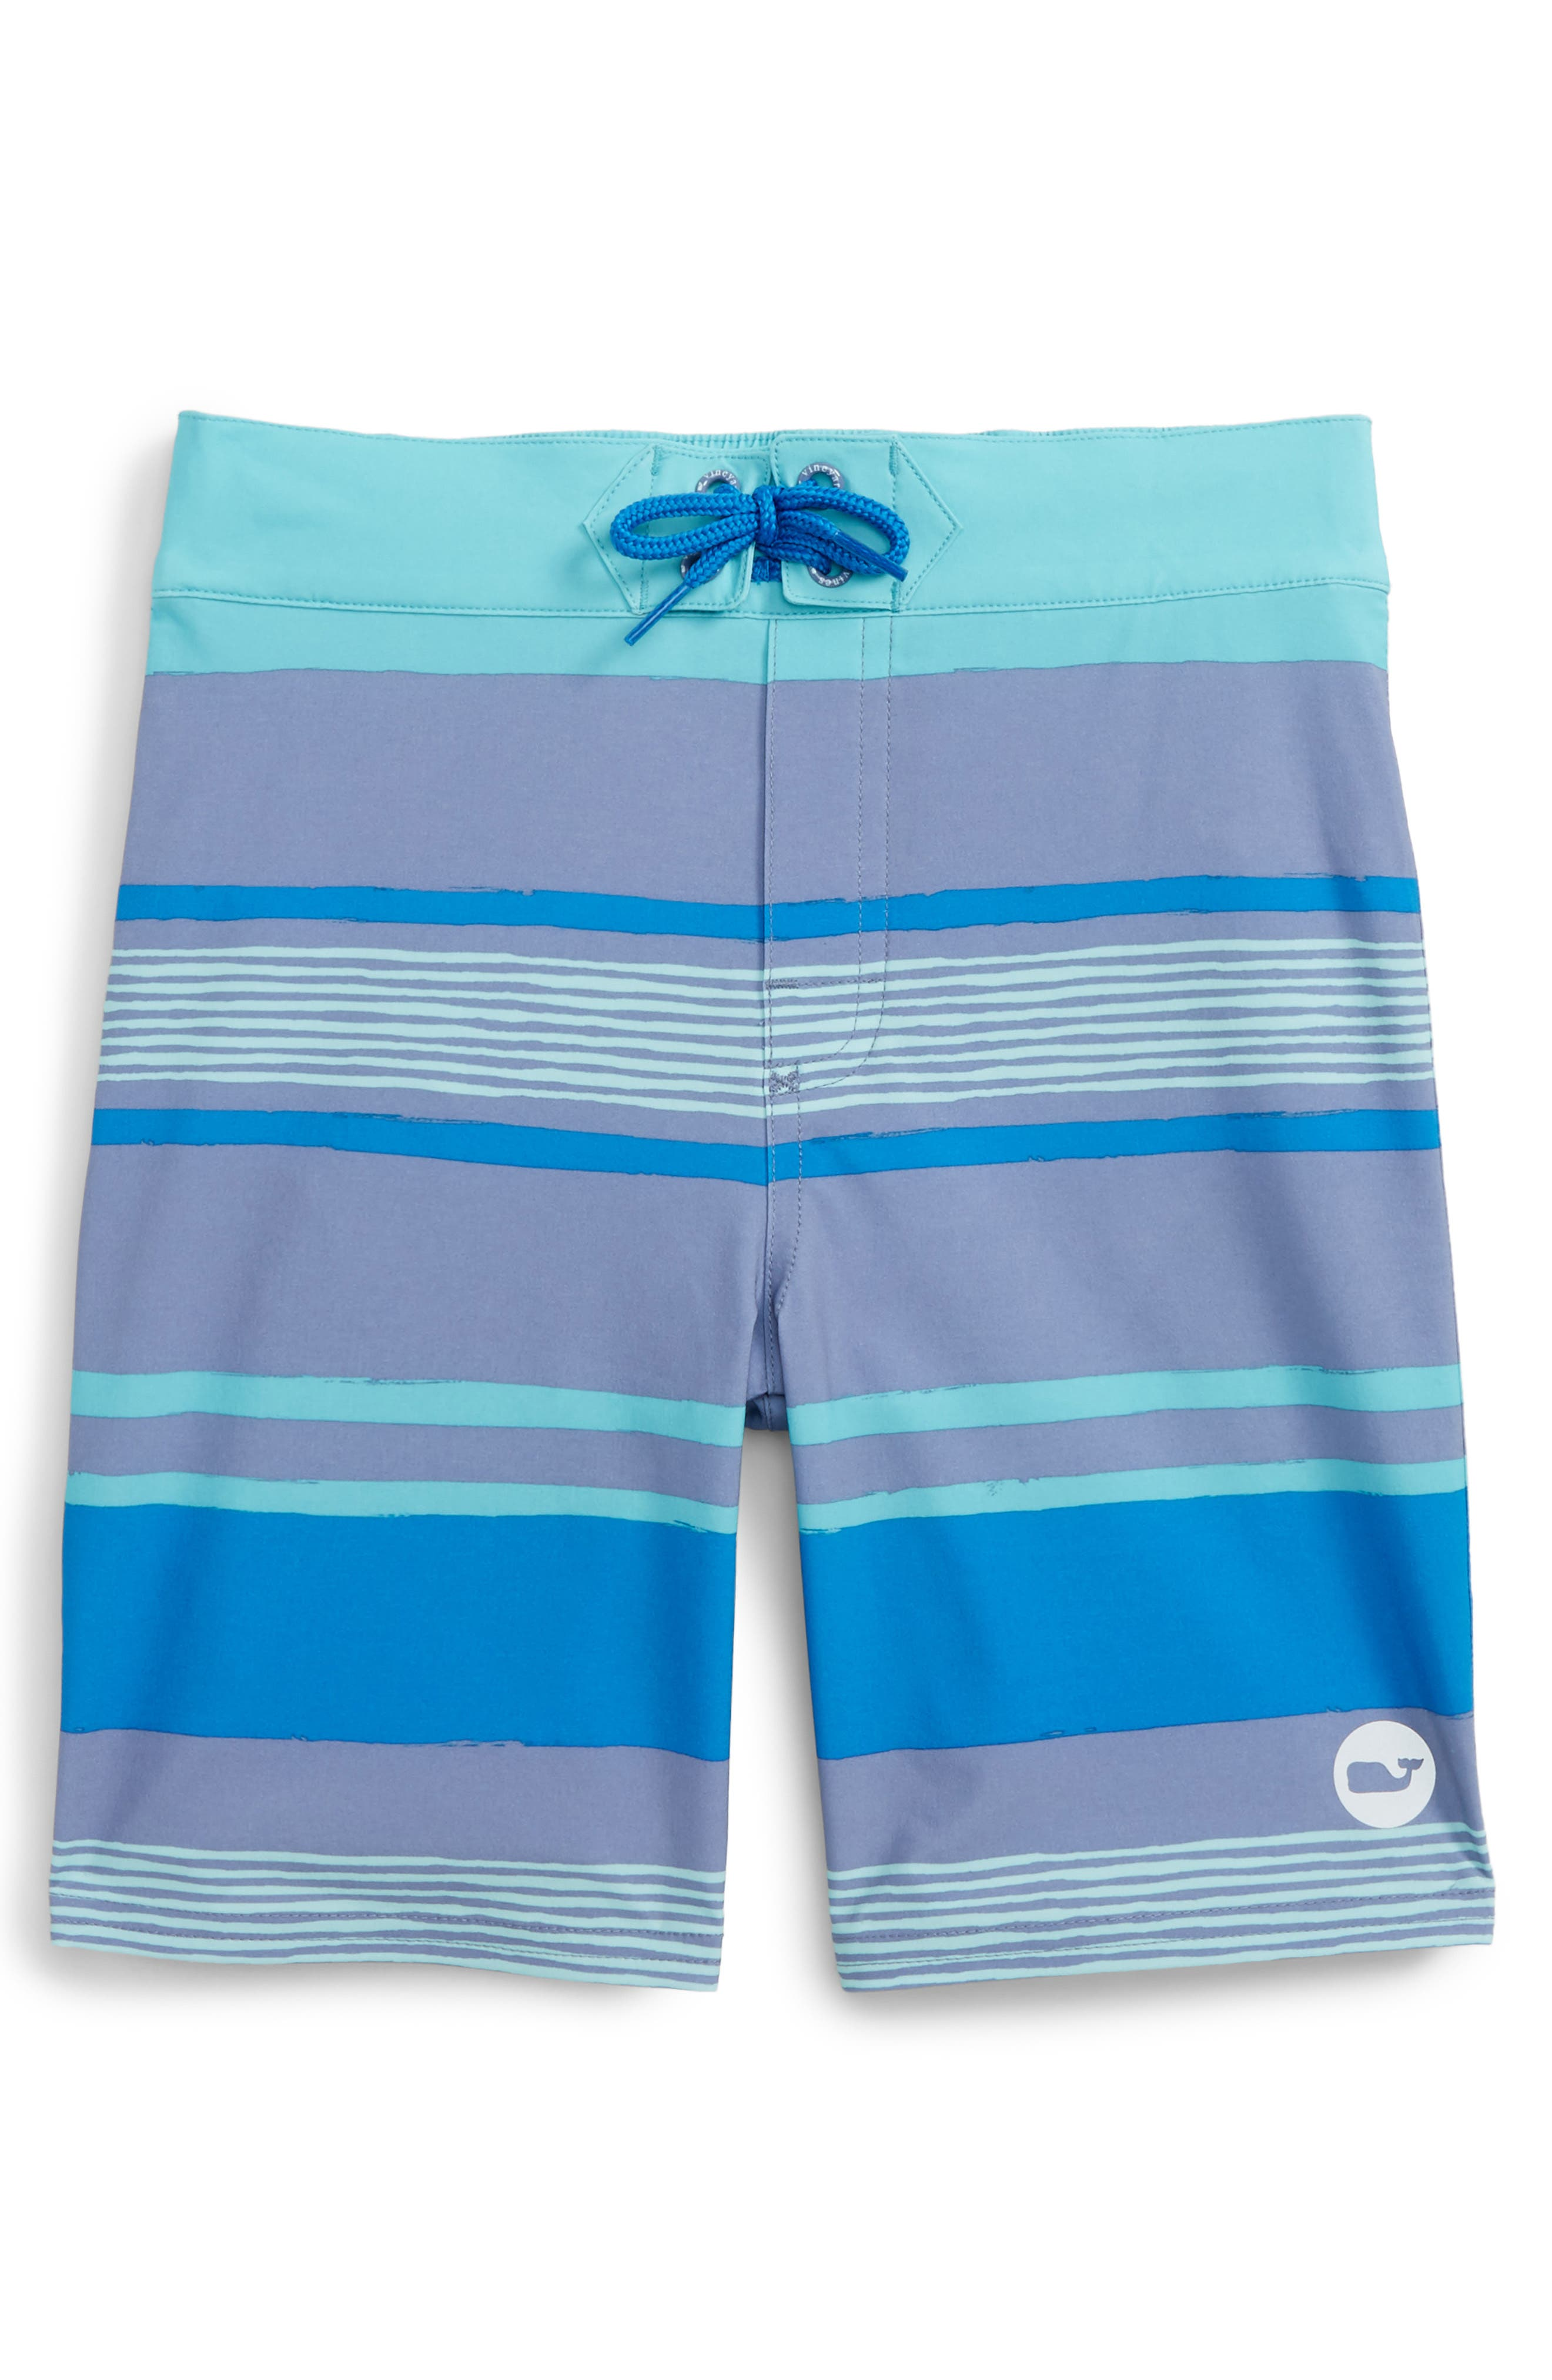 Vineyard Vines Surfer Stripe Board Shorts (Toddler Boys & Little Boys)